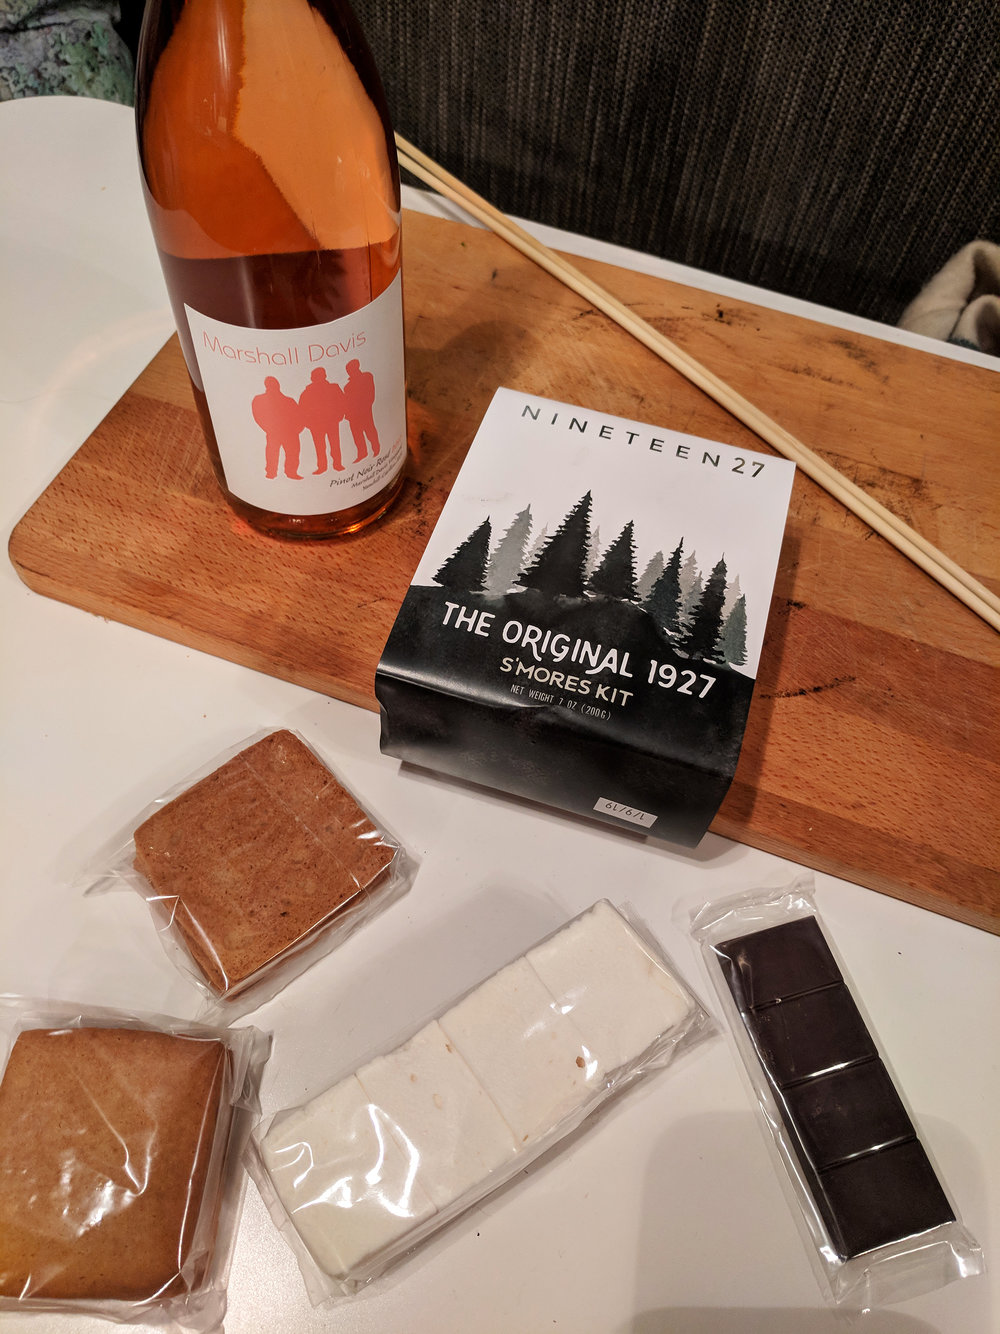 Smores kit and wine.jpg